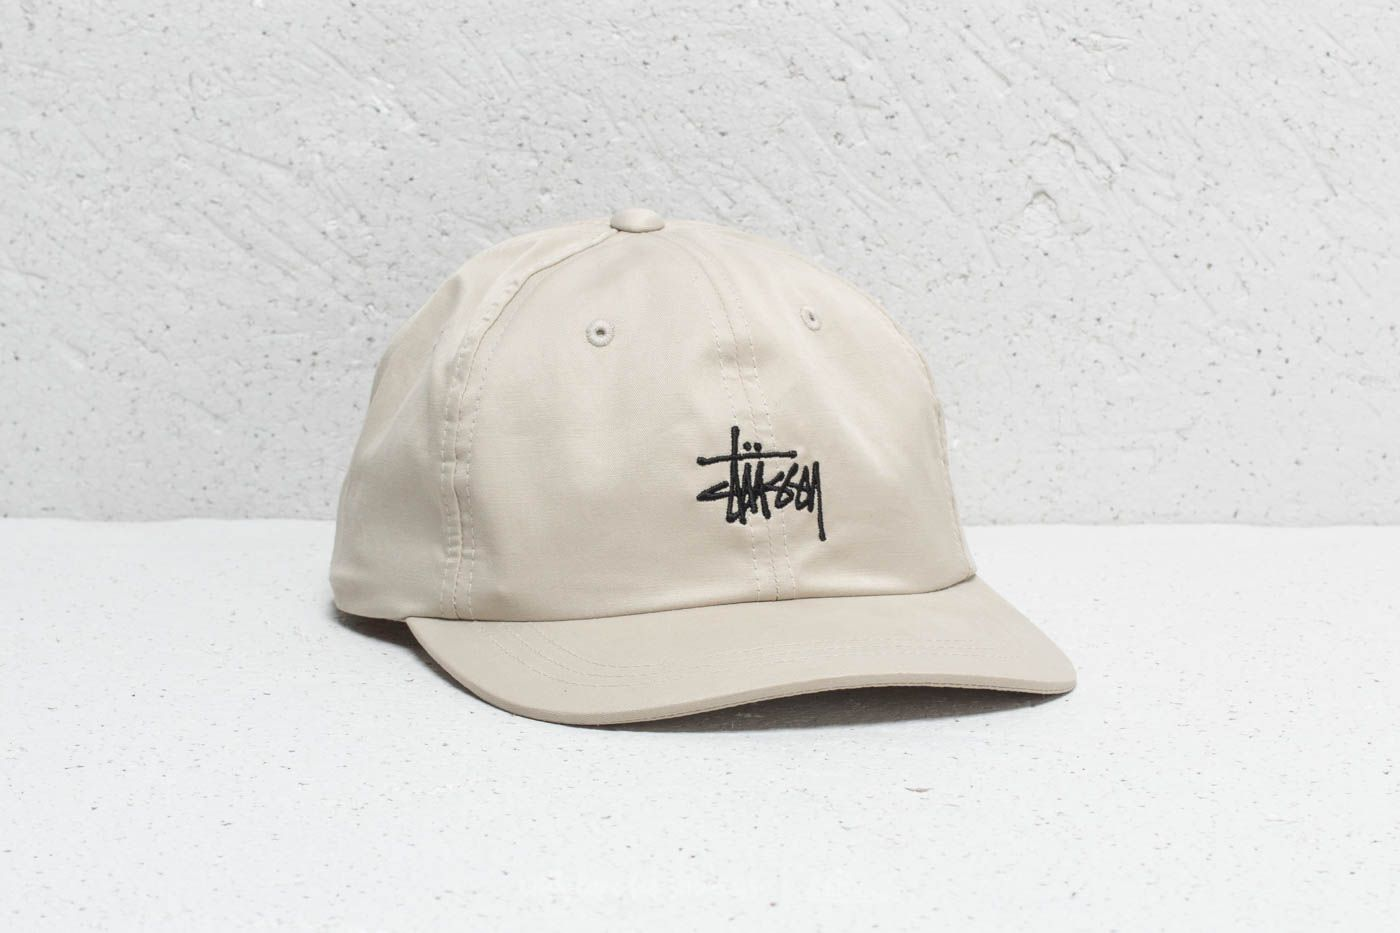 656ae3d3730 Stüssy Stock Low Pro Cap Tan